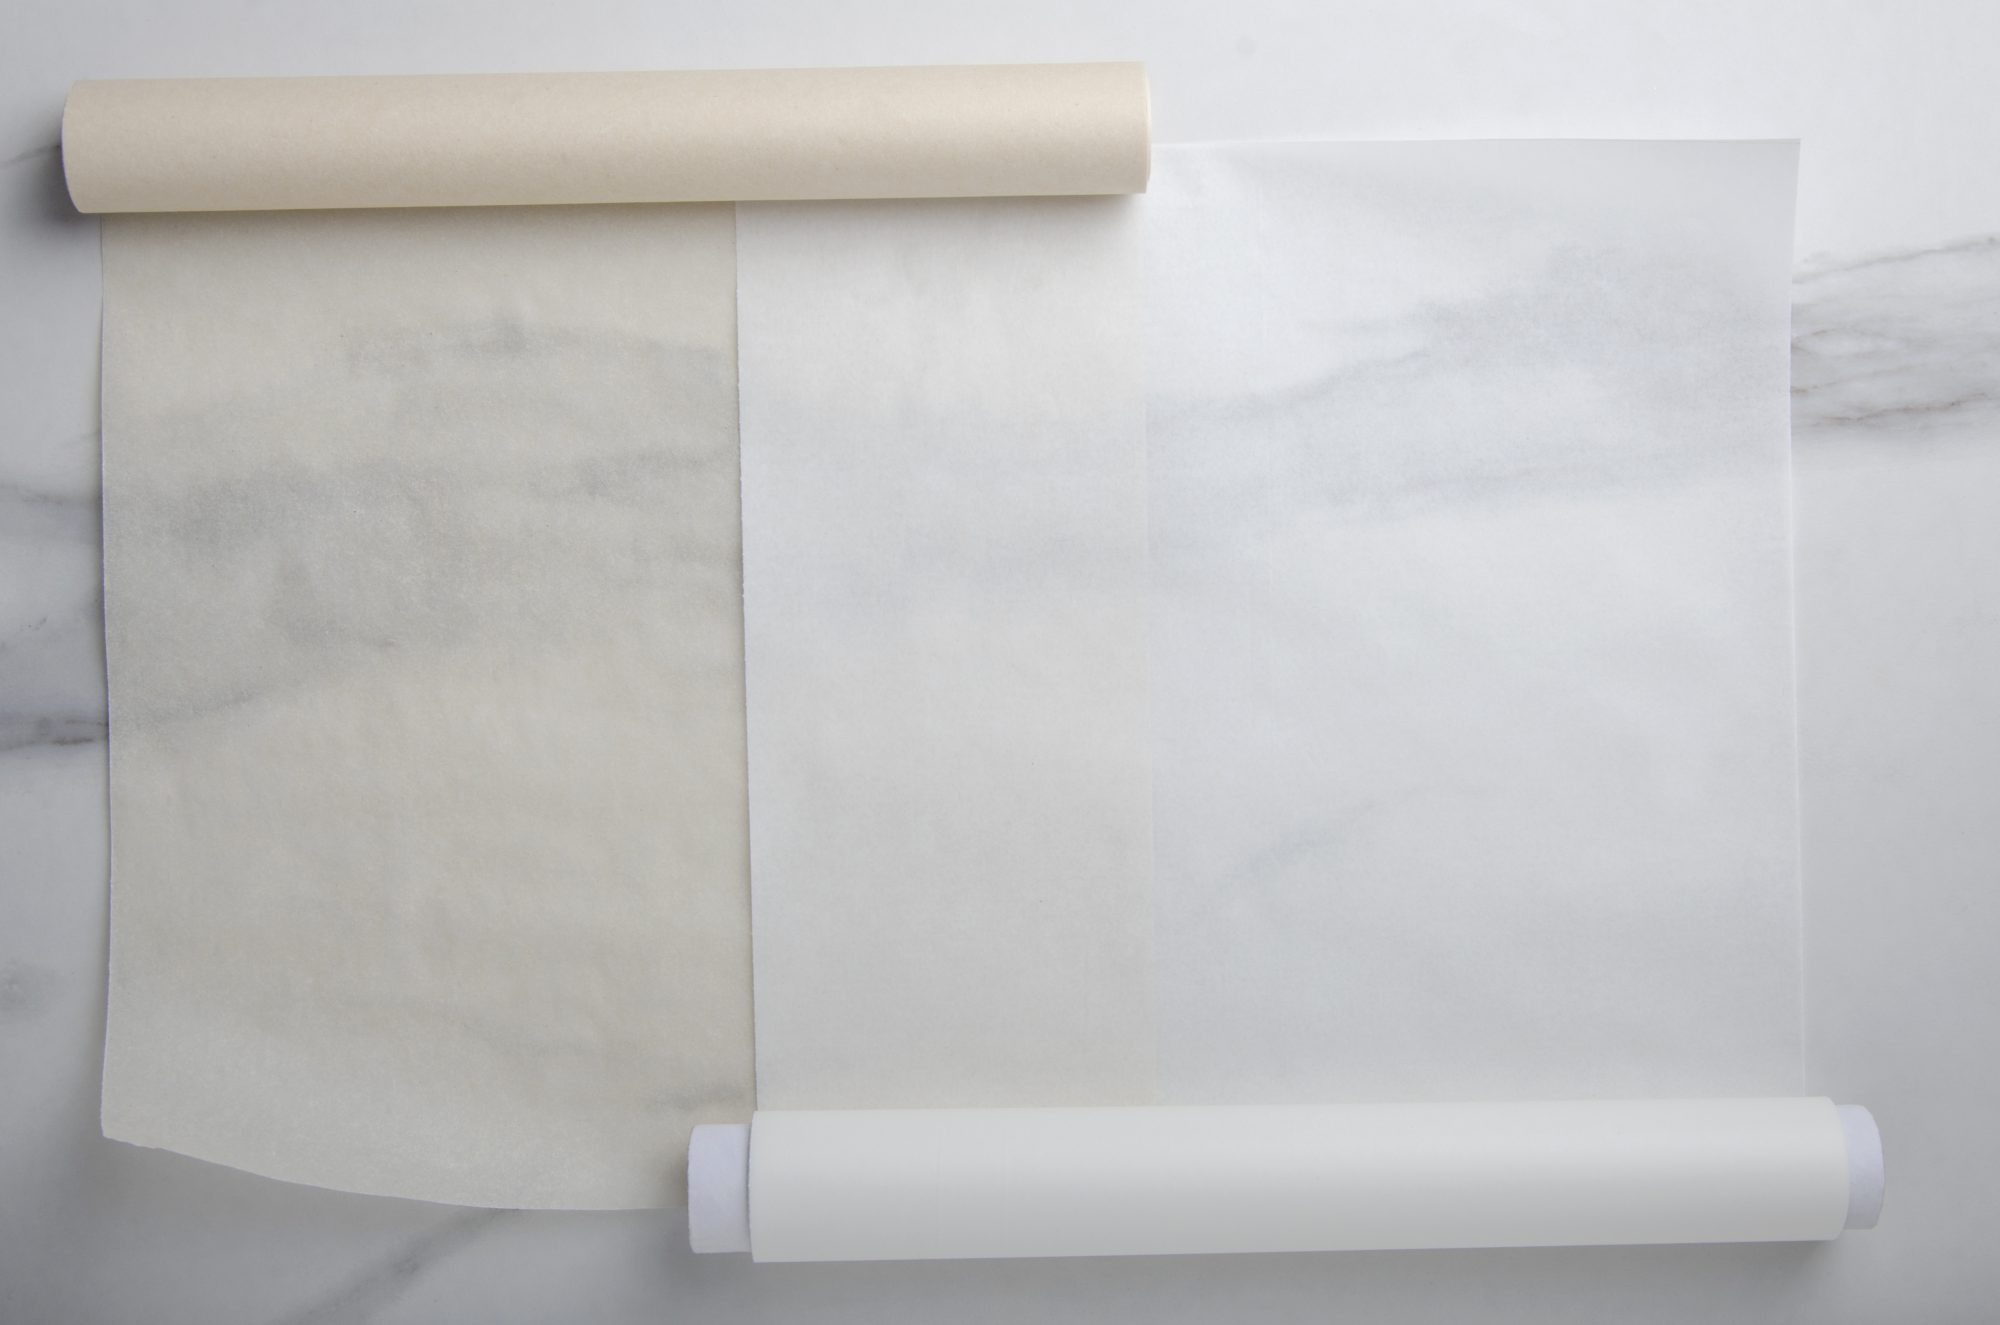 one roll of parchment paper and one roll of wax paper on a desk